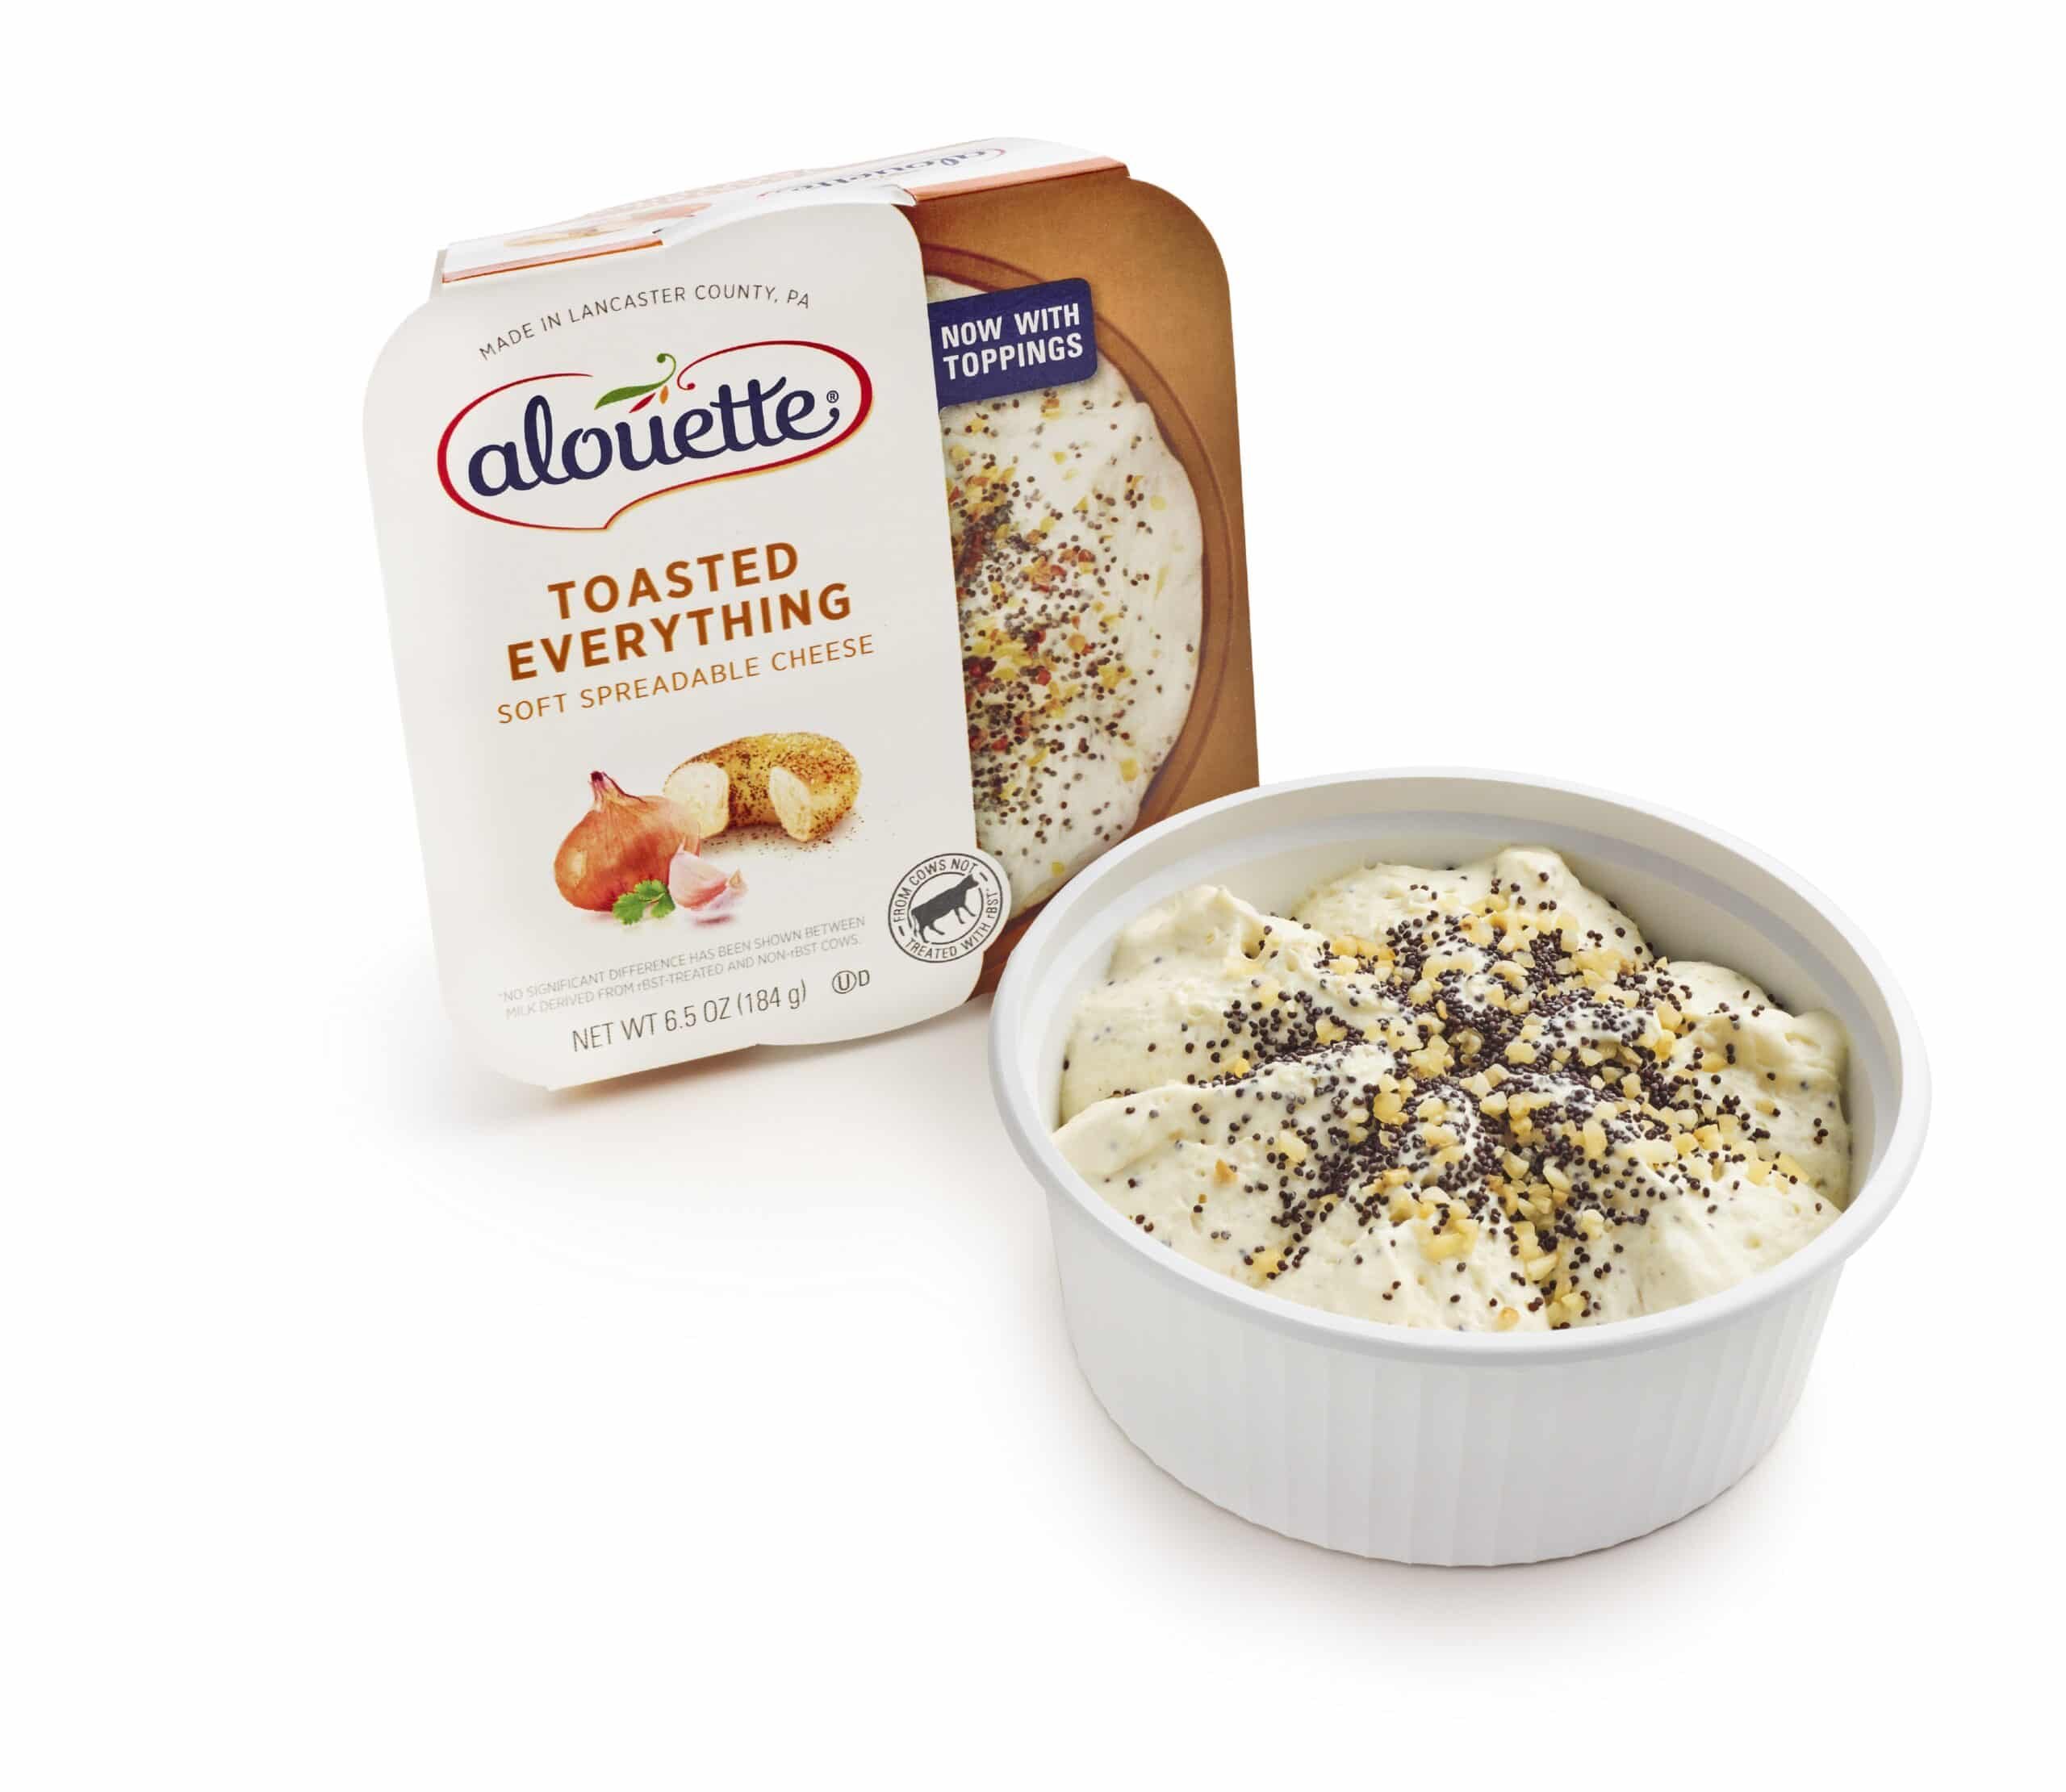 Alouette Toasted everything spread packaging and pot